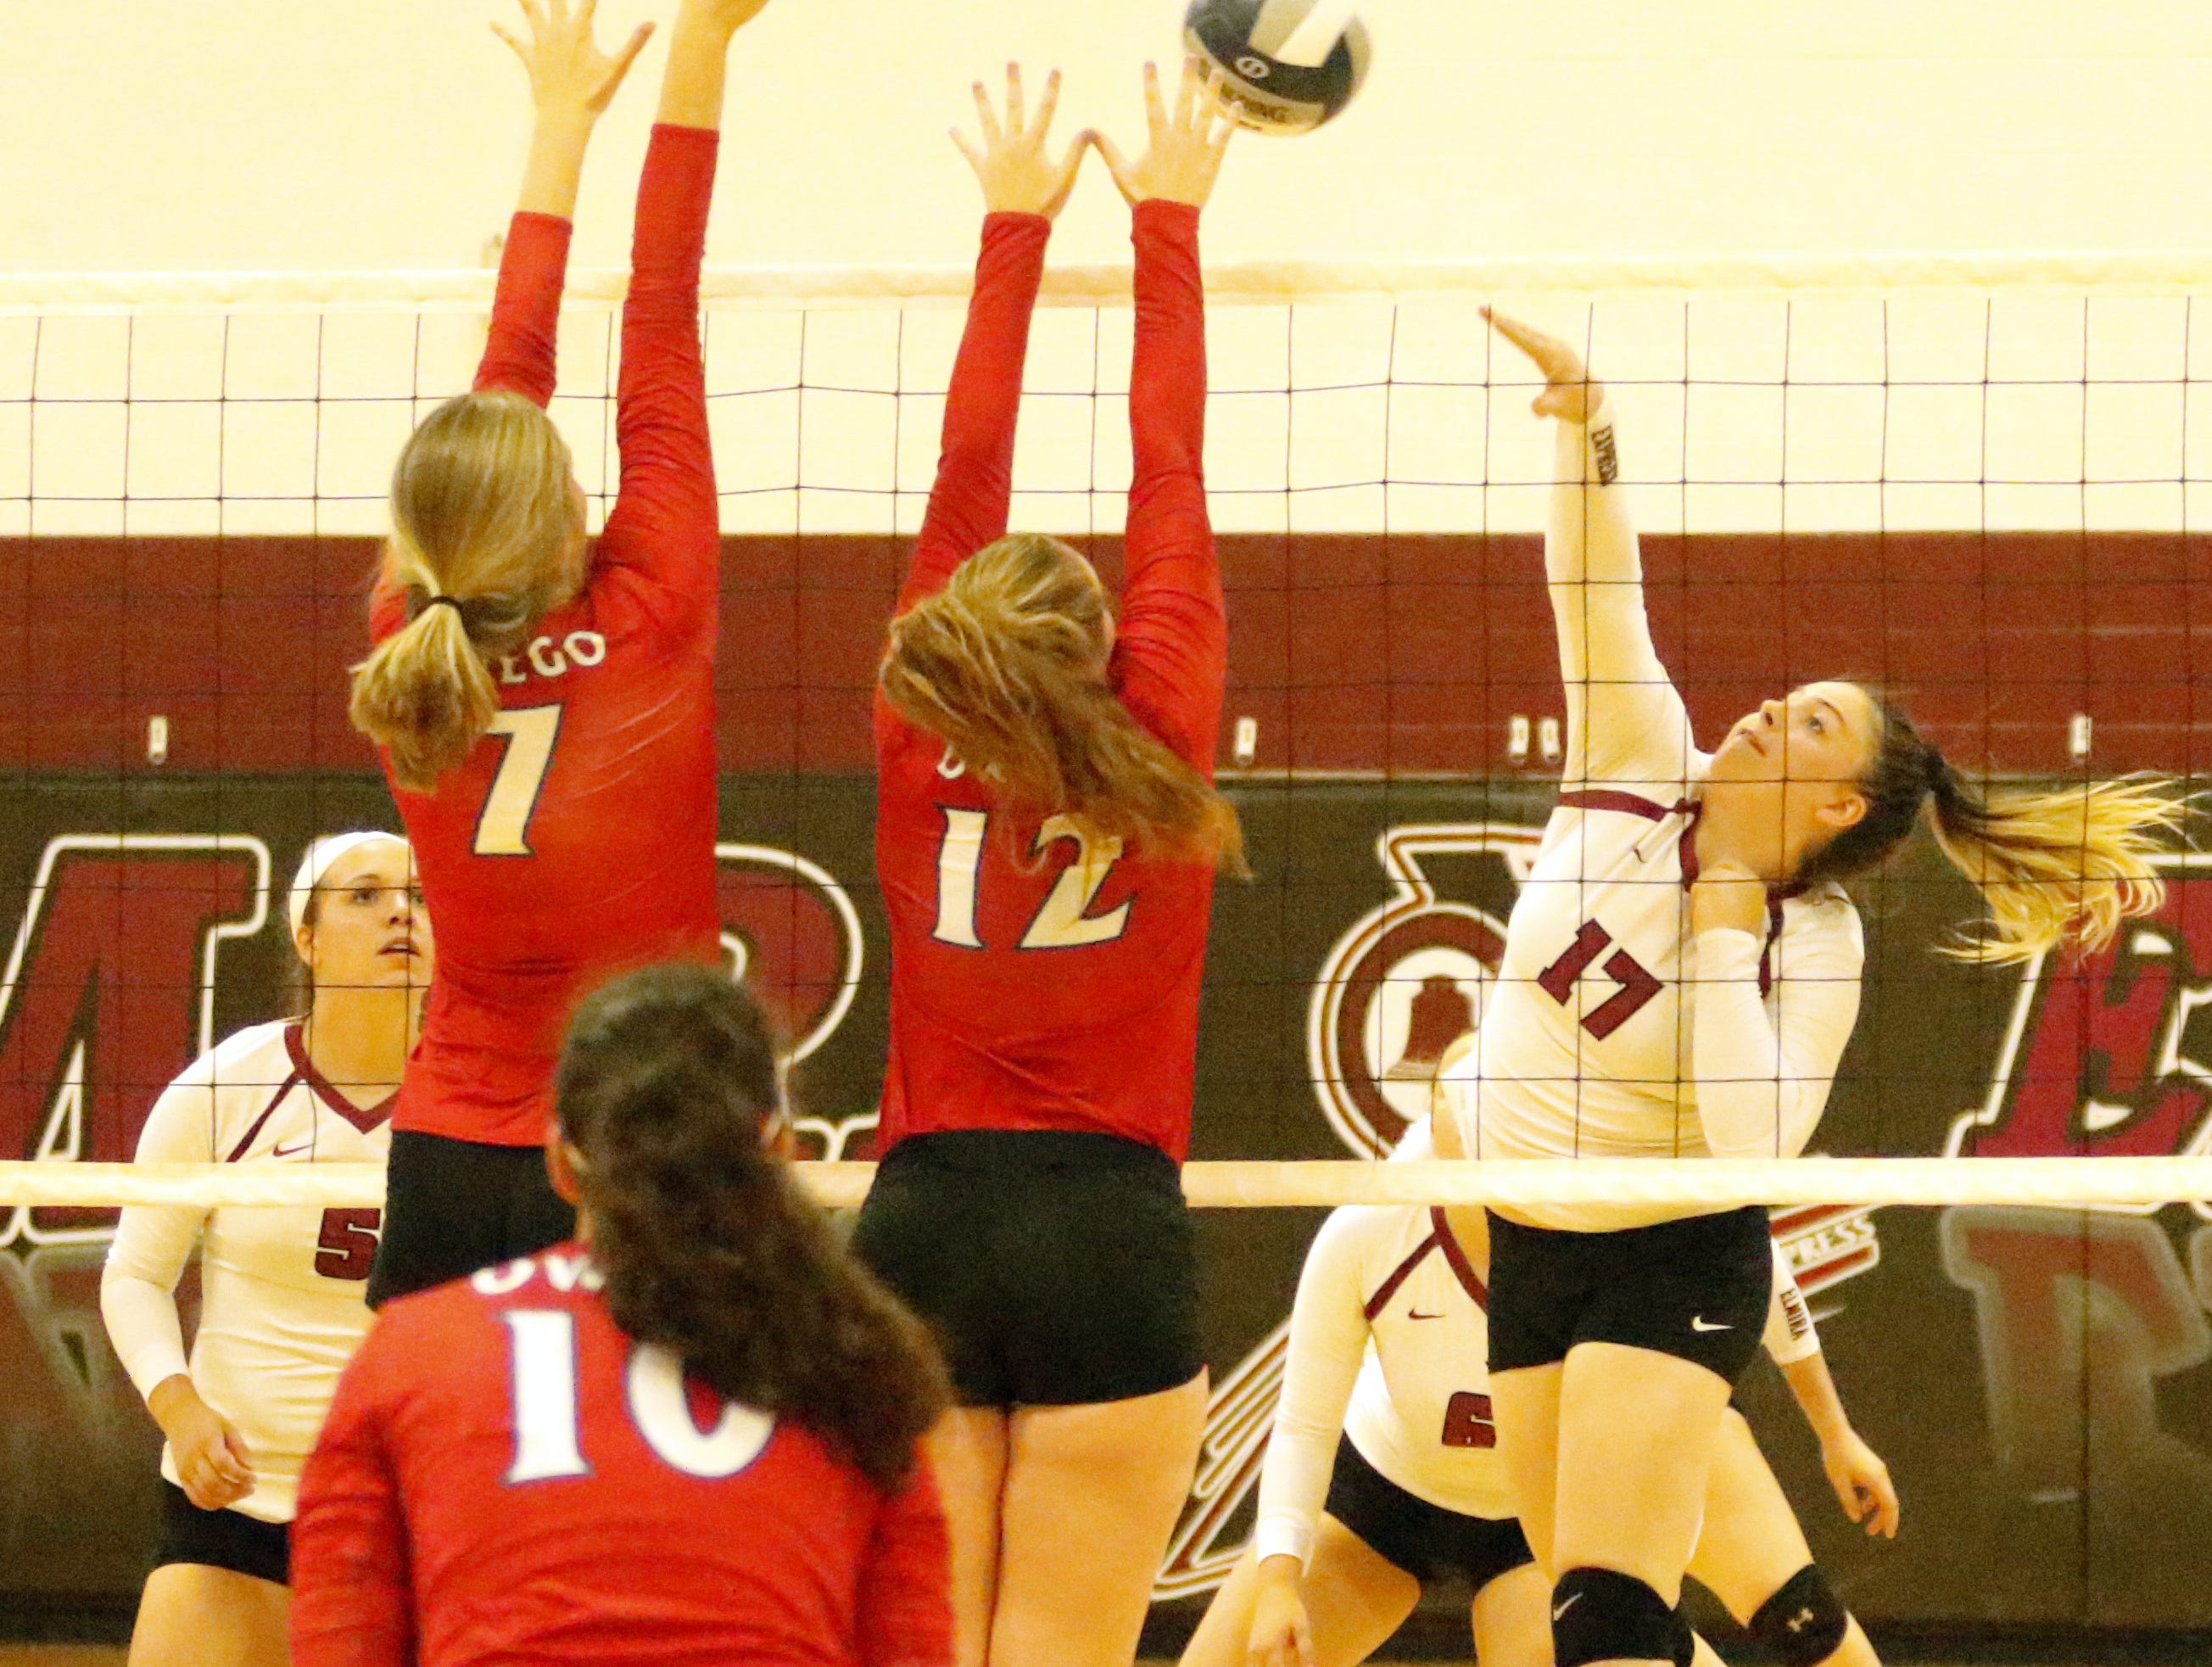 Makena Craig of Elmira goes up for a kill as Owego's Sara Zepkowski (7) and Taylor Aubel (12) defend during OFA's 3-0 win Sept. 11, 2018 at Elmira High School.